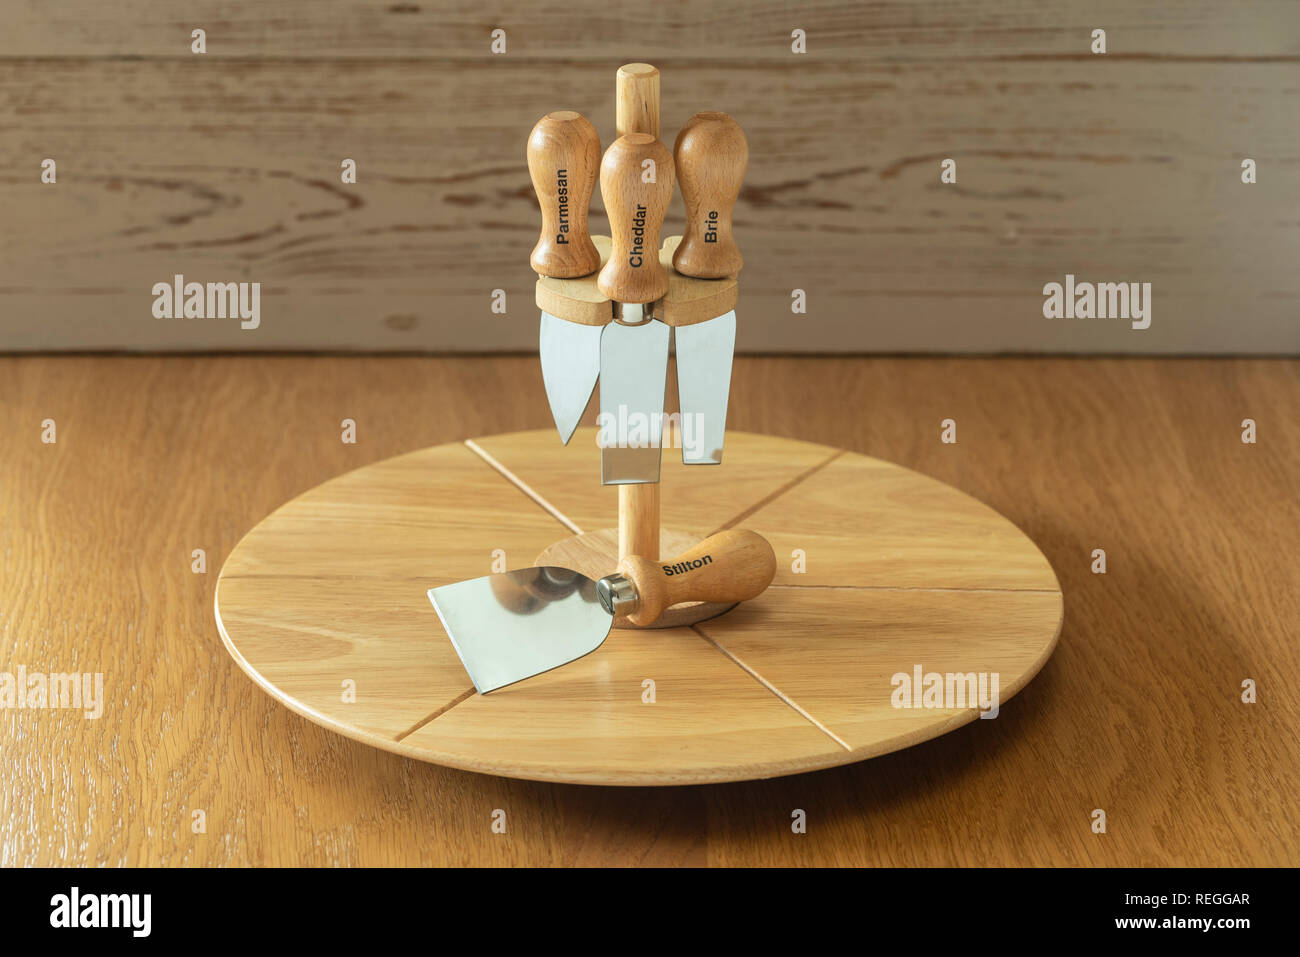 Cheese board and assorted knives. Rotating board for serving cheese and cheese knife. - Stock Image